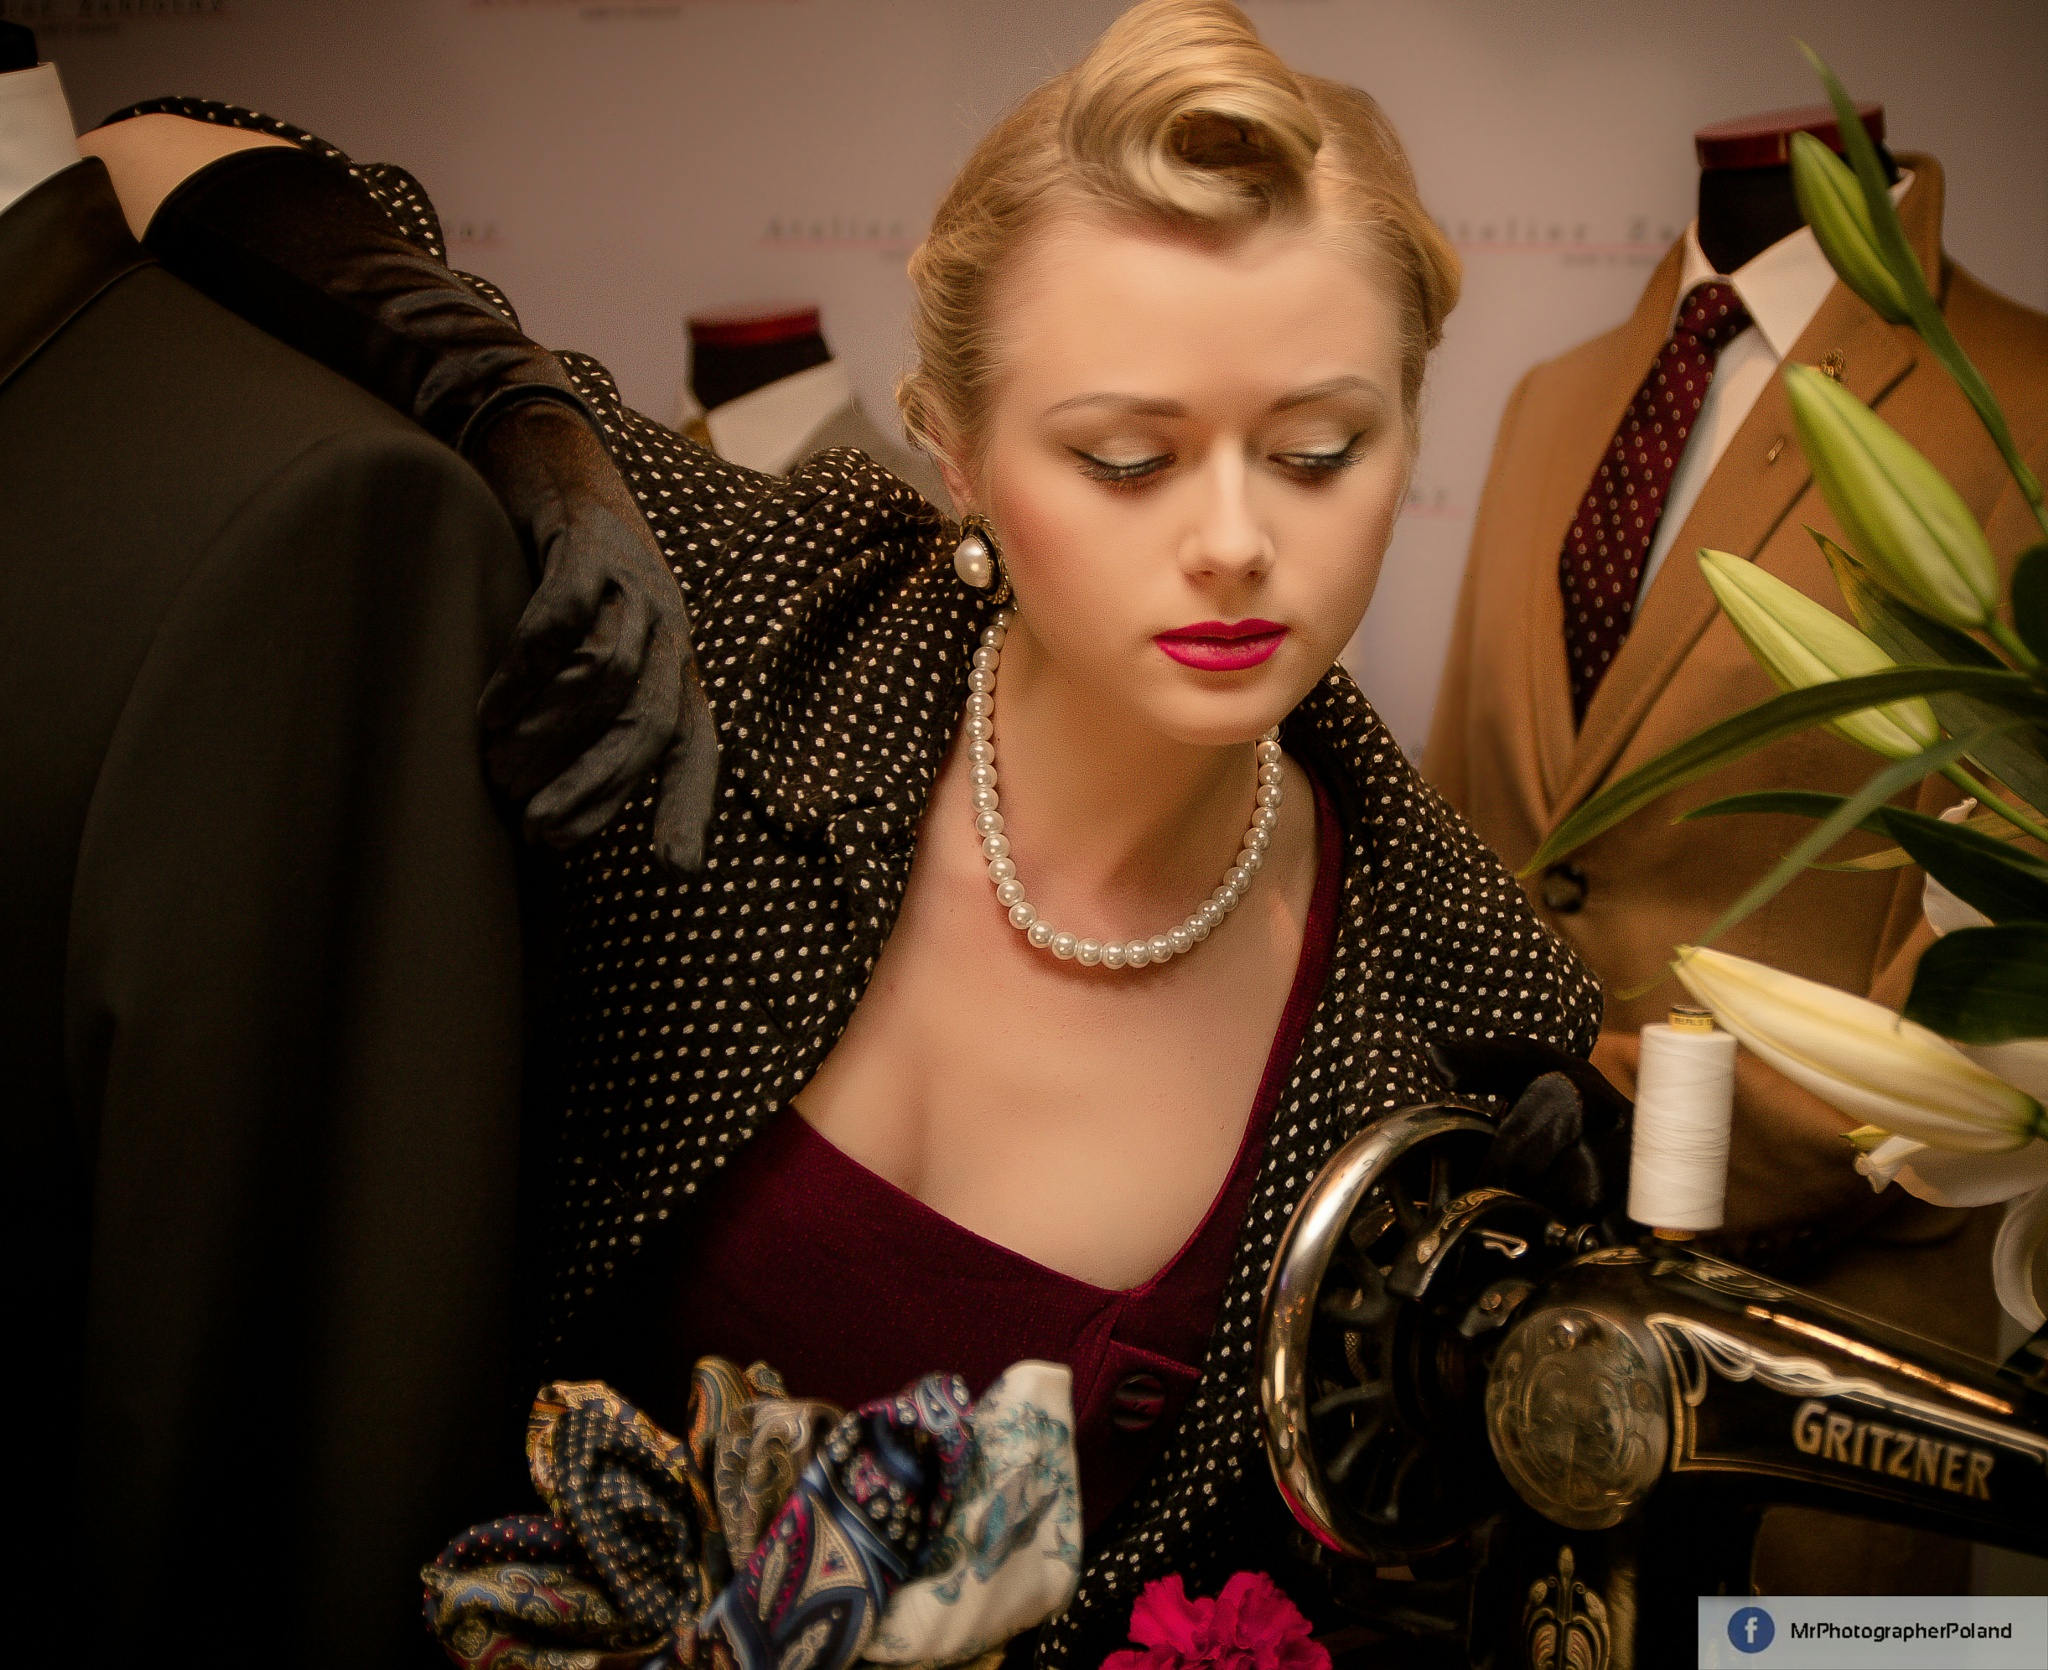 At the tailor's by PanFotograf